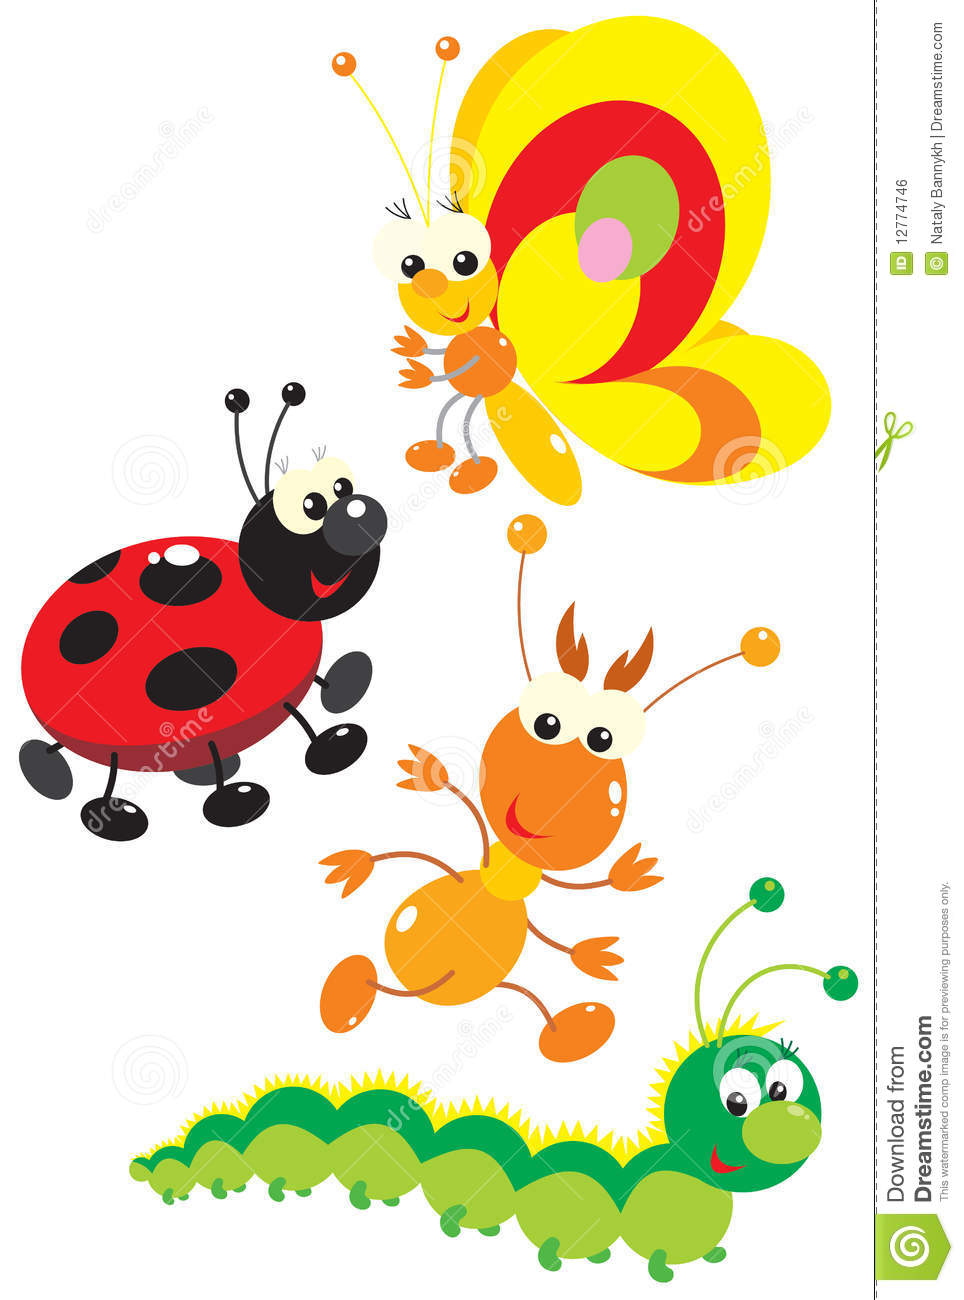 Butterfly, Termite, Ladybug And Caterpillar Royalty Free Stock Image ...